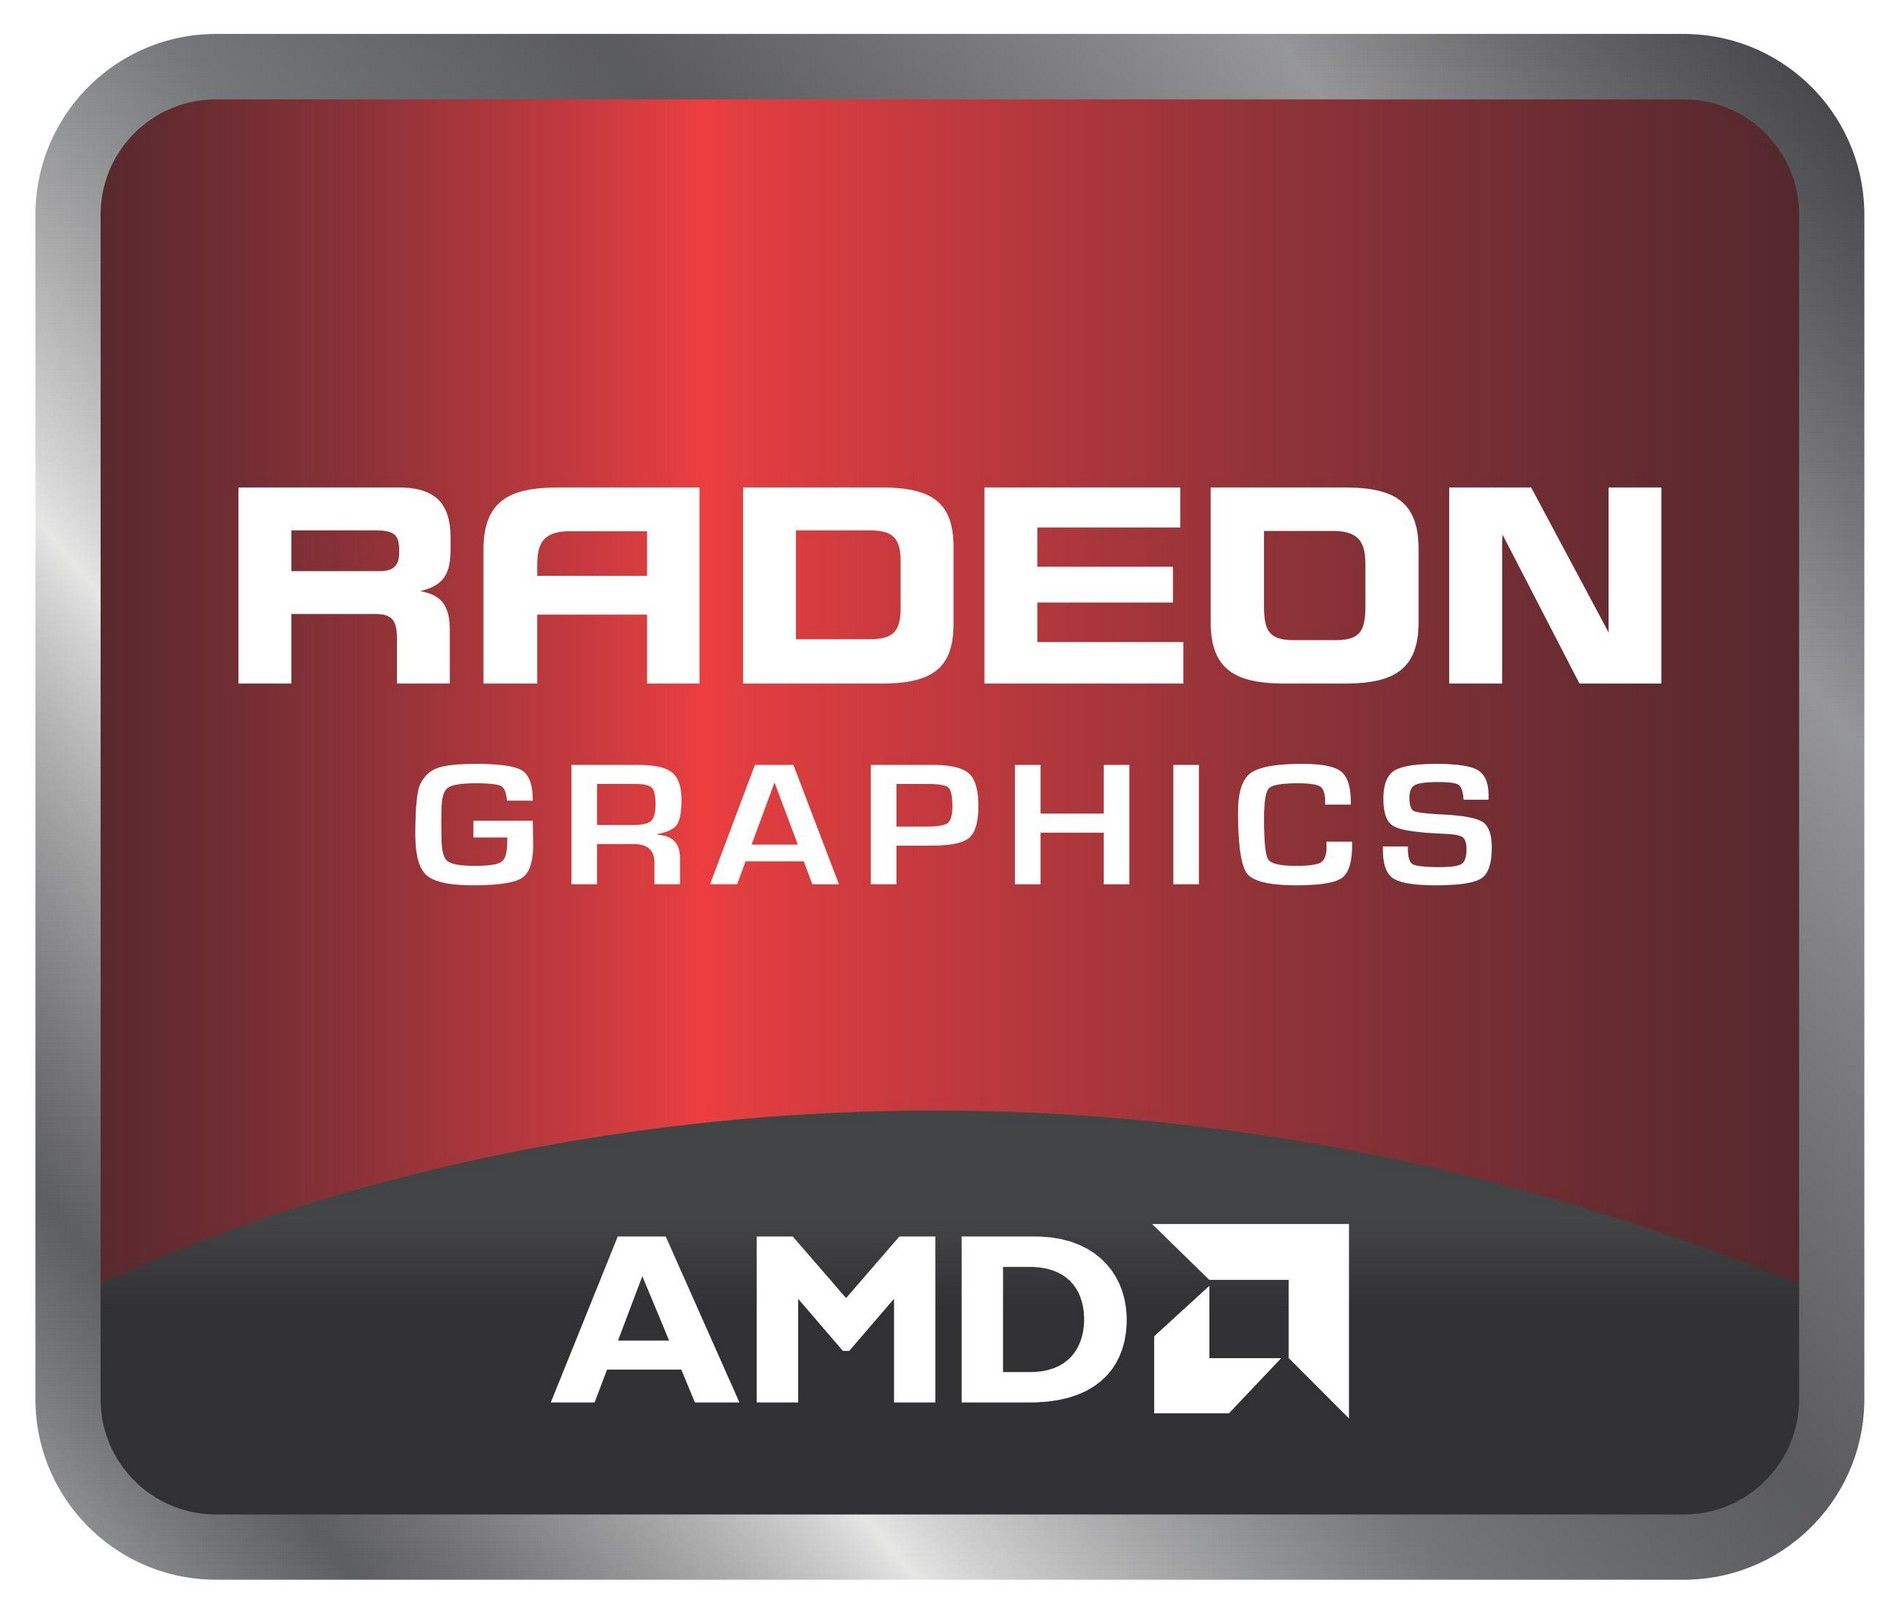 AMD Radeon Graphics Logo Download Vector Graphic card